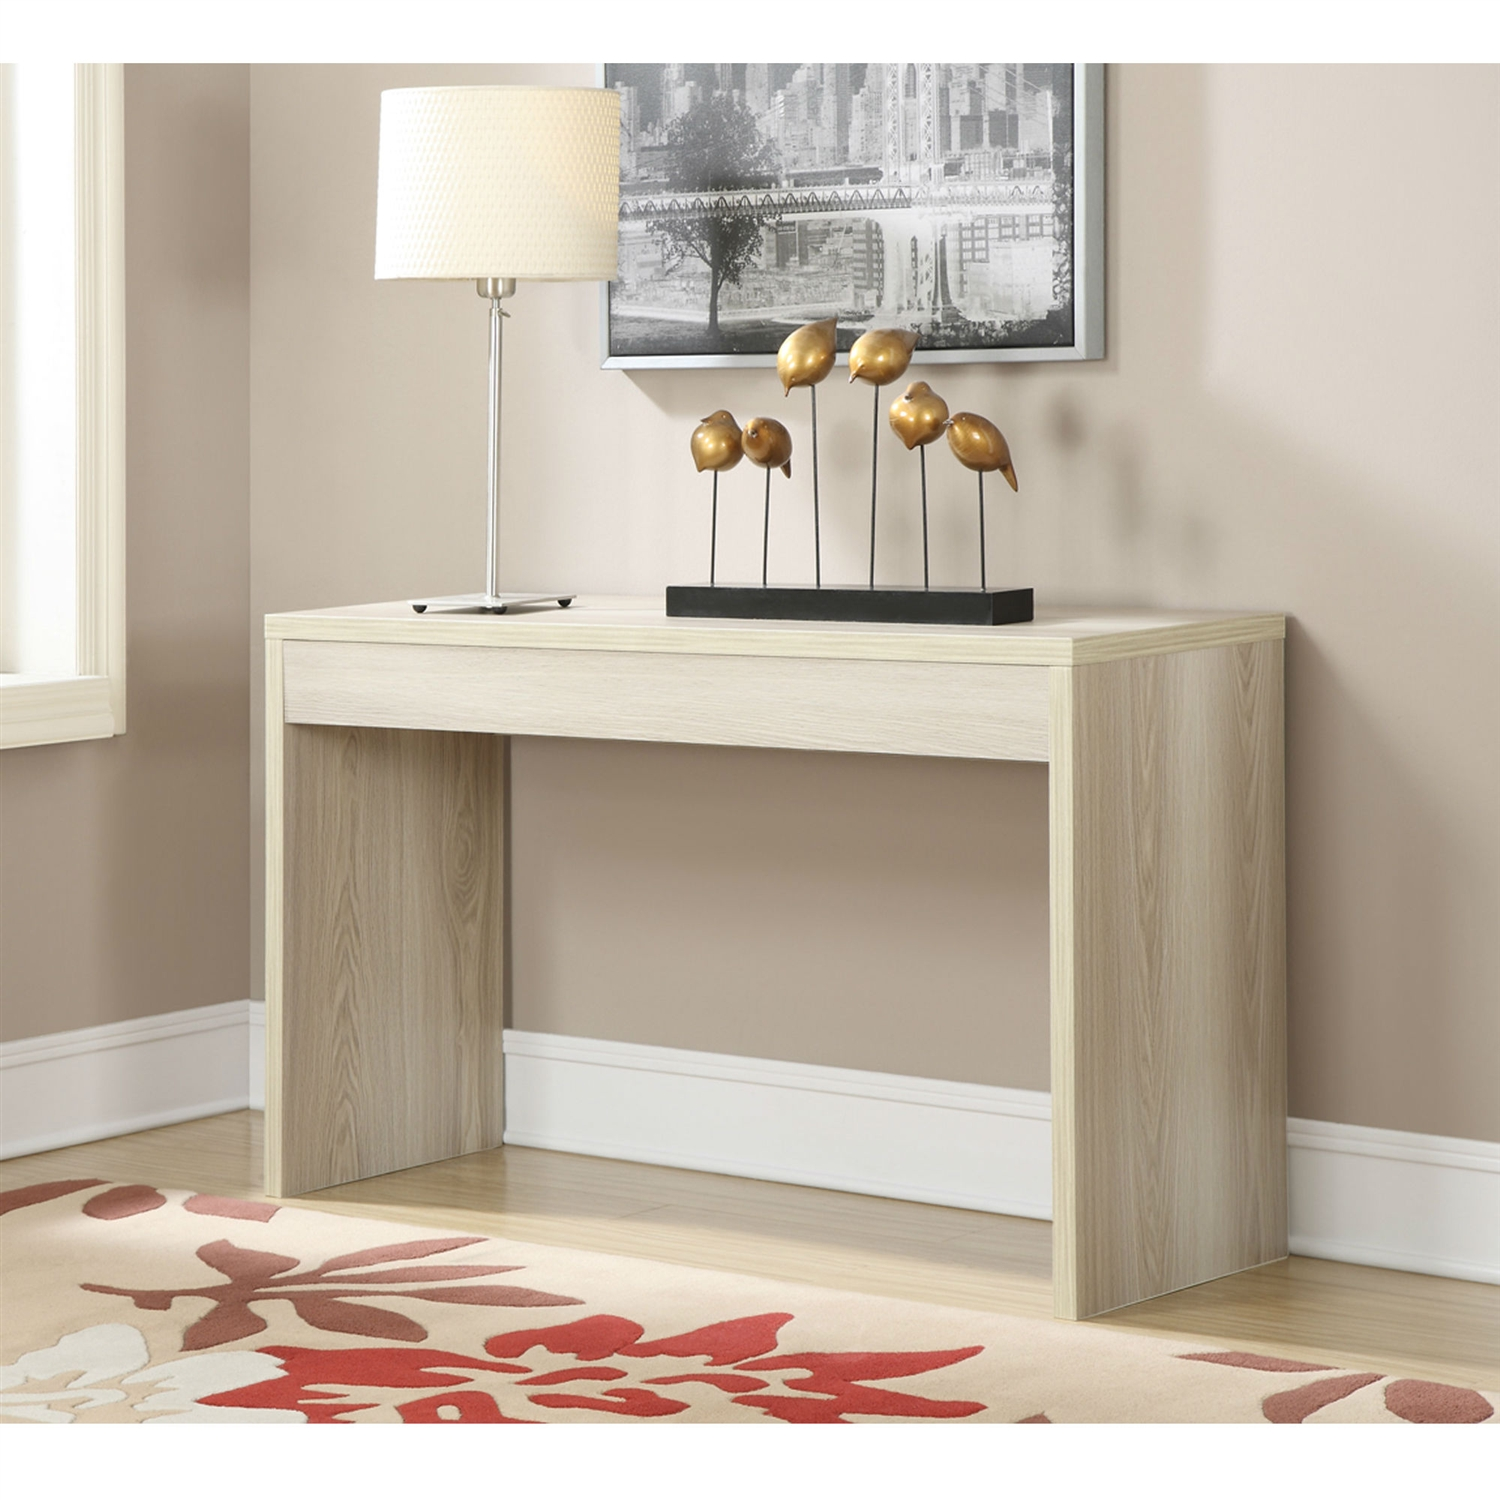 adjustable metal wall shelf kmart.htm contemporary sofa table console table in weathered white wood  contemporary sofa table console table